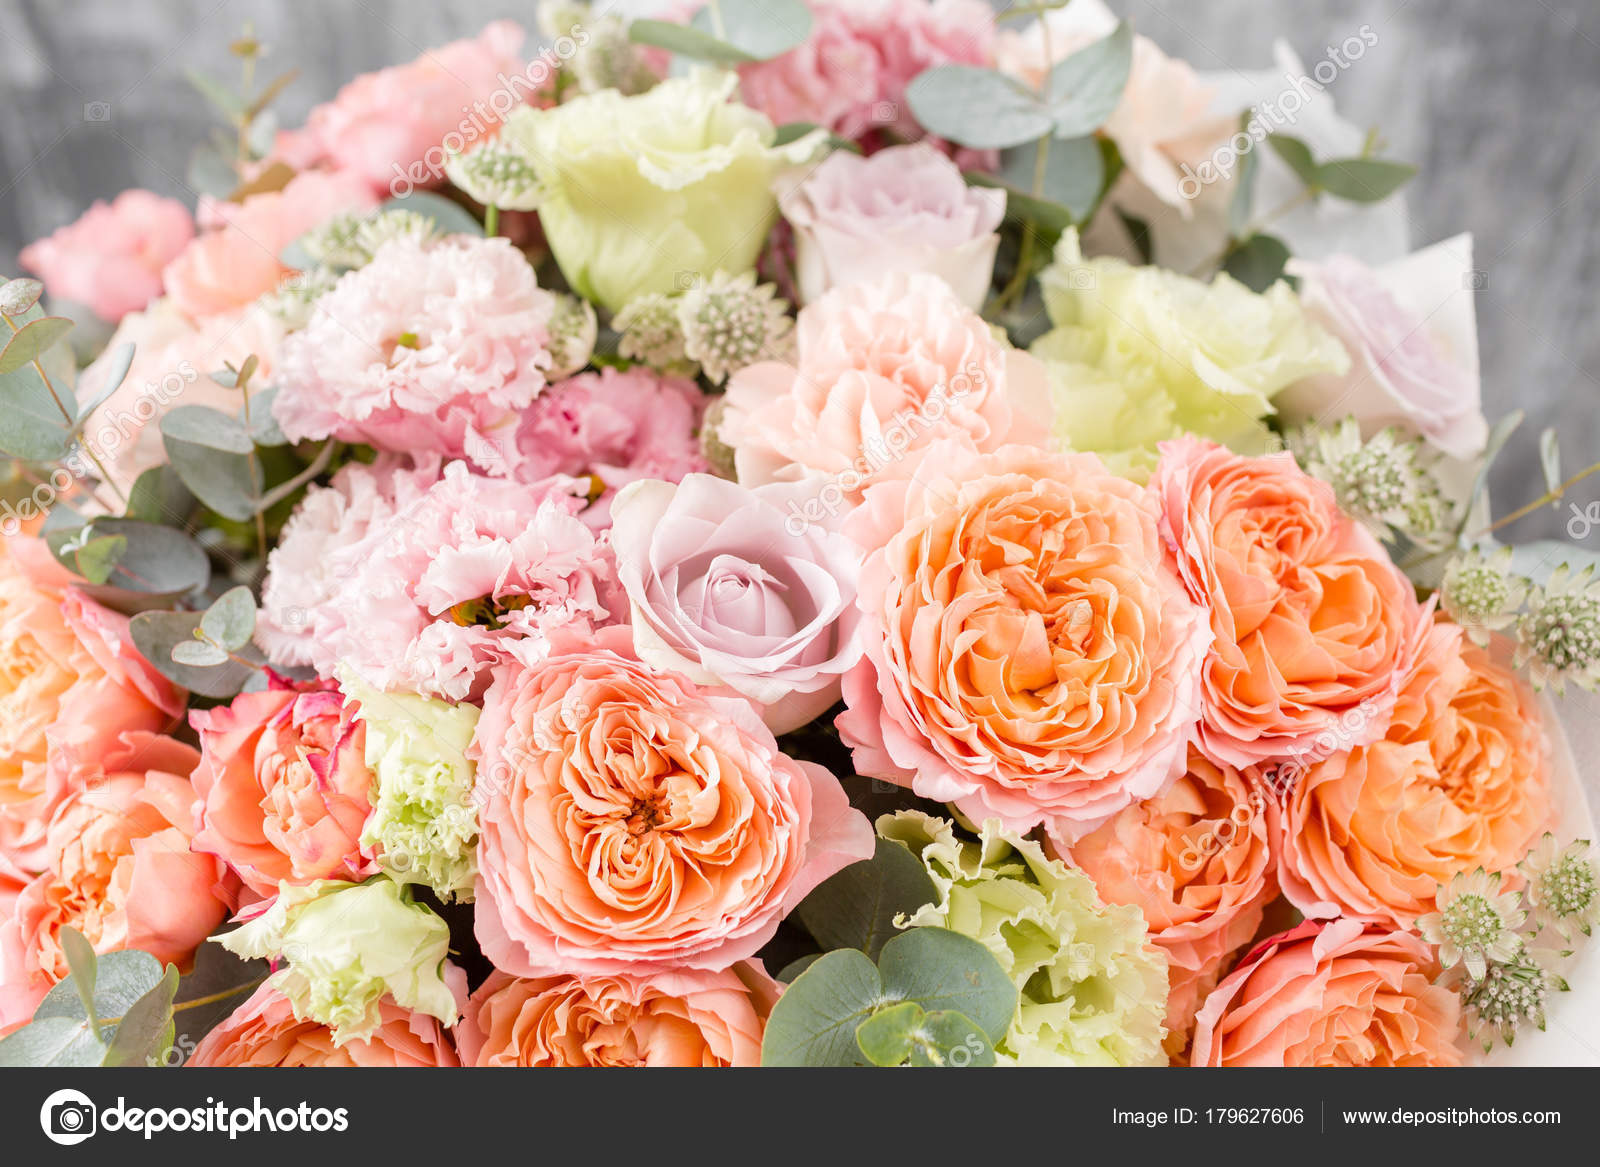 Beautiful Bouquet Of Mixed Flowers In A Vase On Wooden Table The